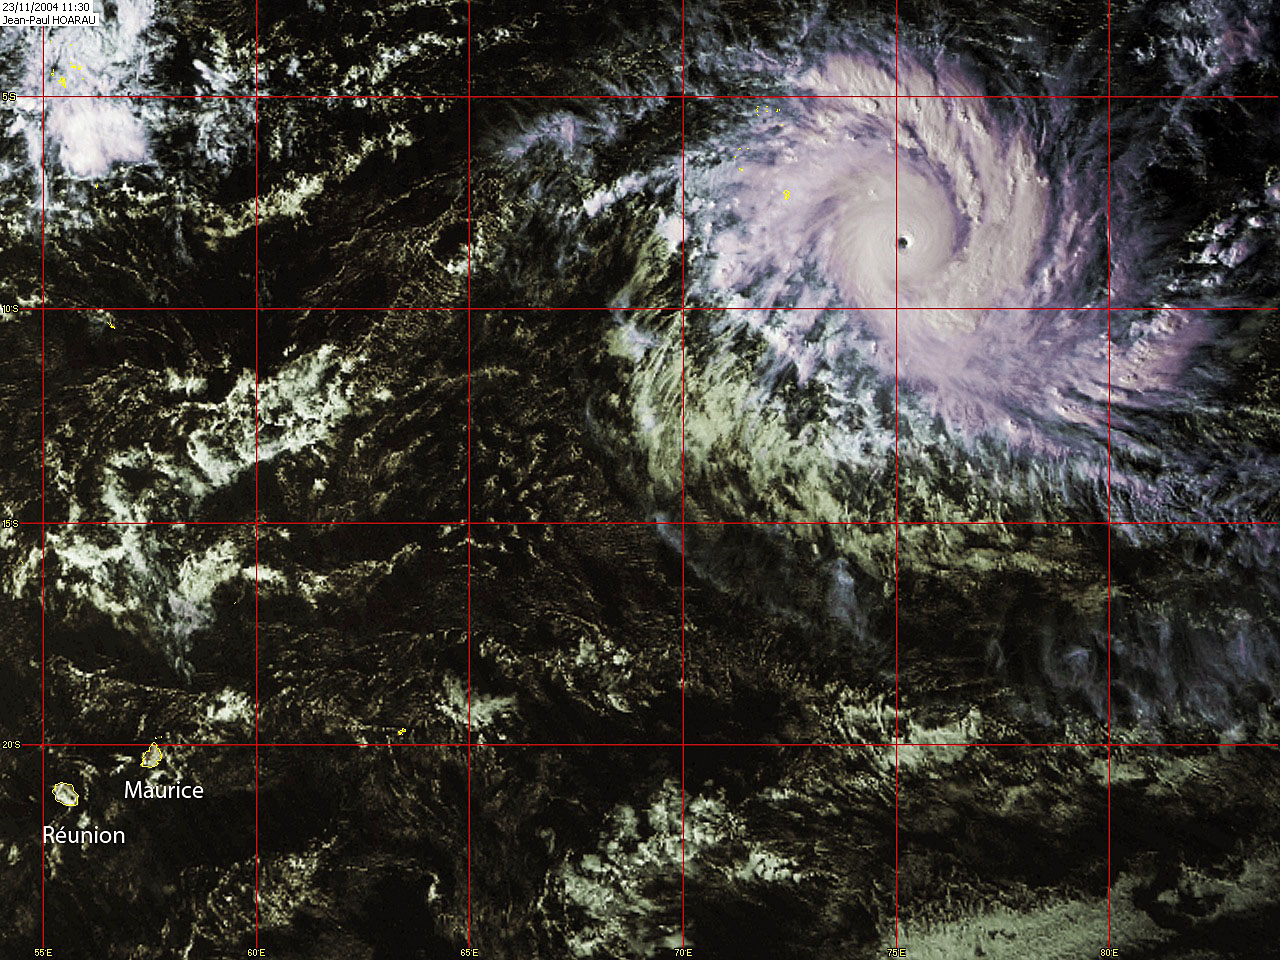 Cyclone Tropical Intense BENTO le 23/11/2004 (JP HOARAU)